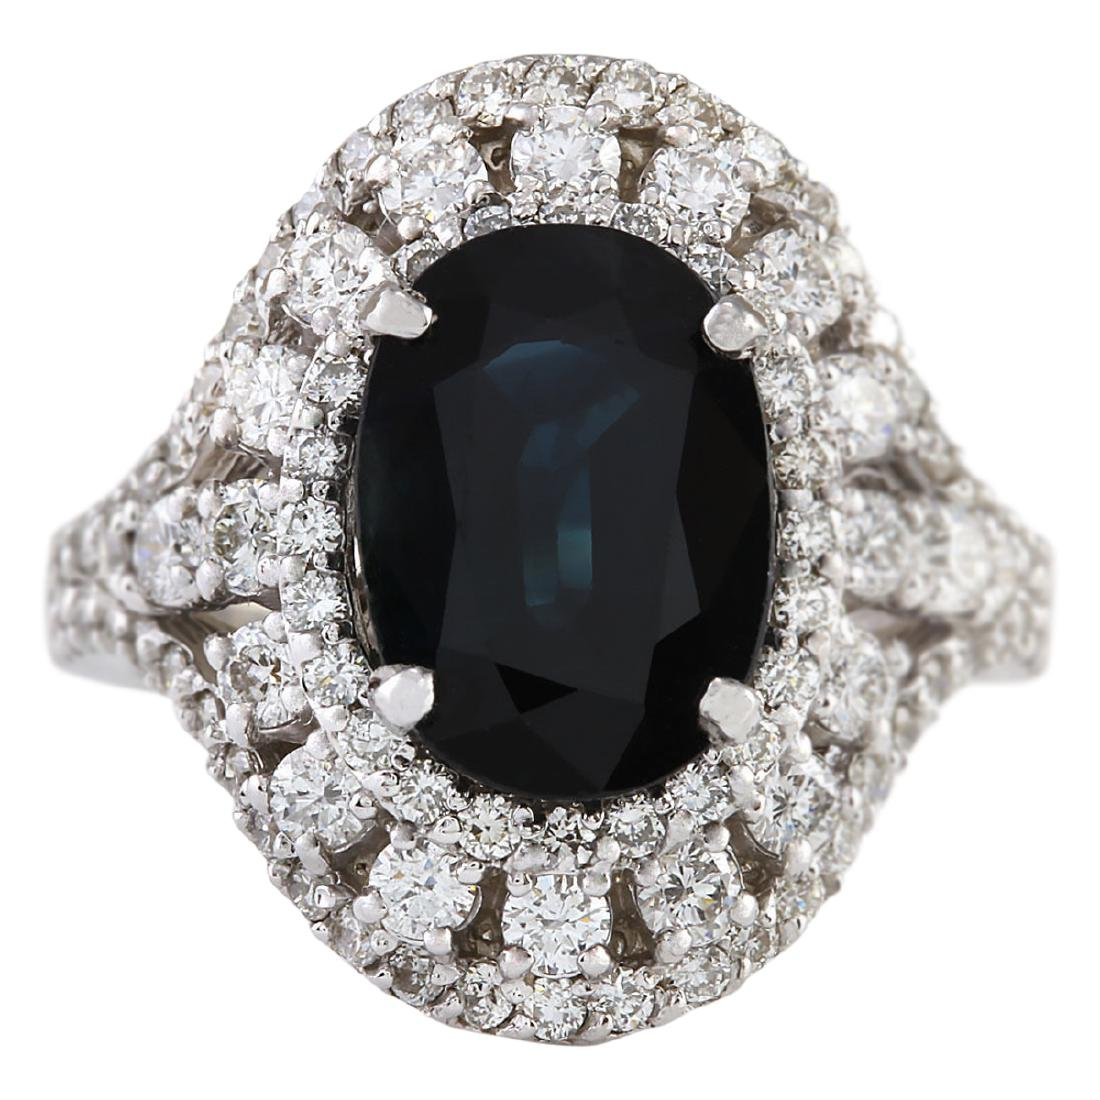 6.15 CTW Natural Sapphire And Diamond Ring In 18K White